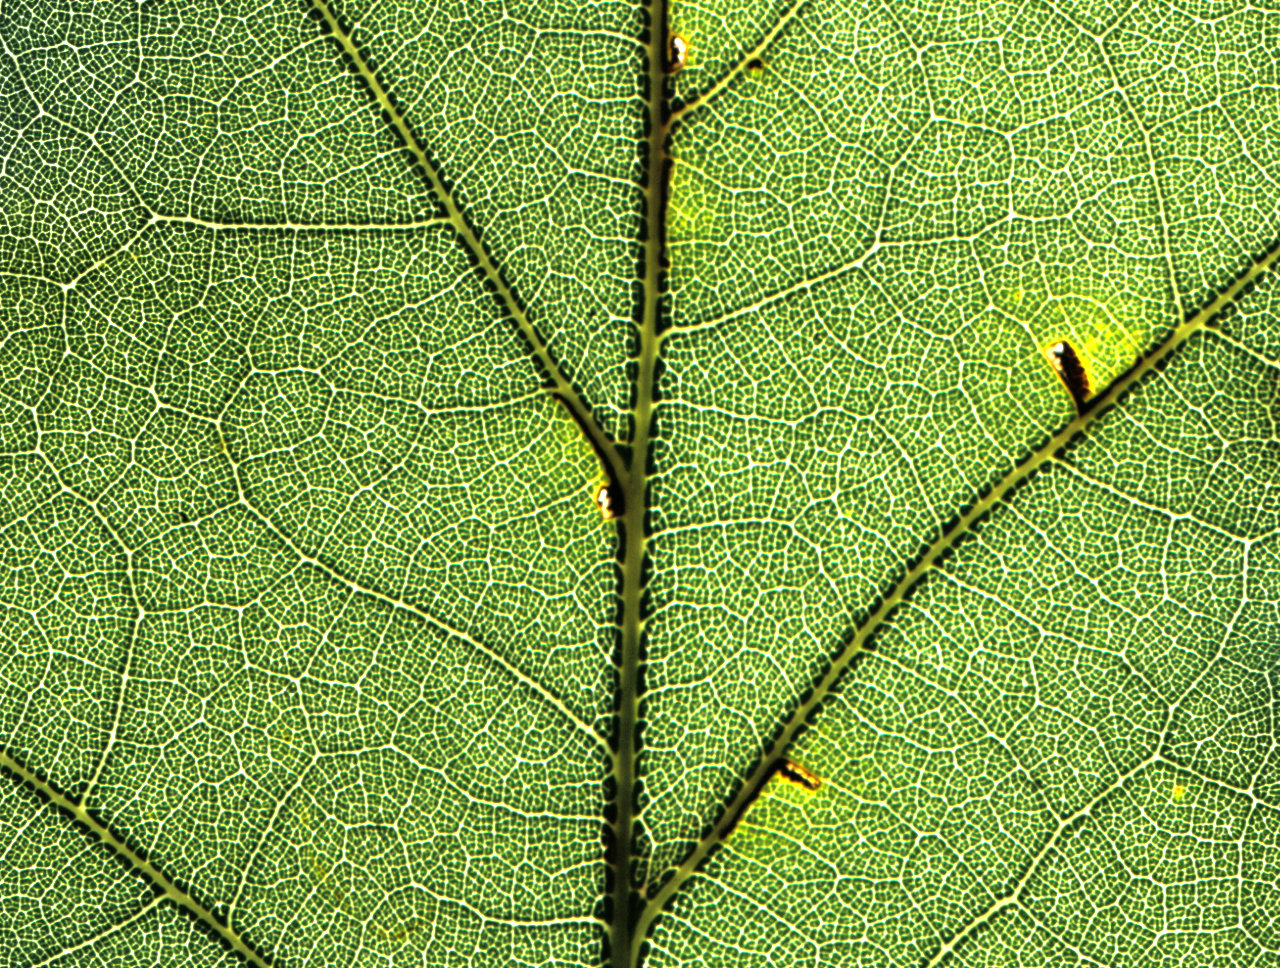 Veins within a leaf of a red oak tree form a complex network with many closed loops.